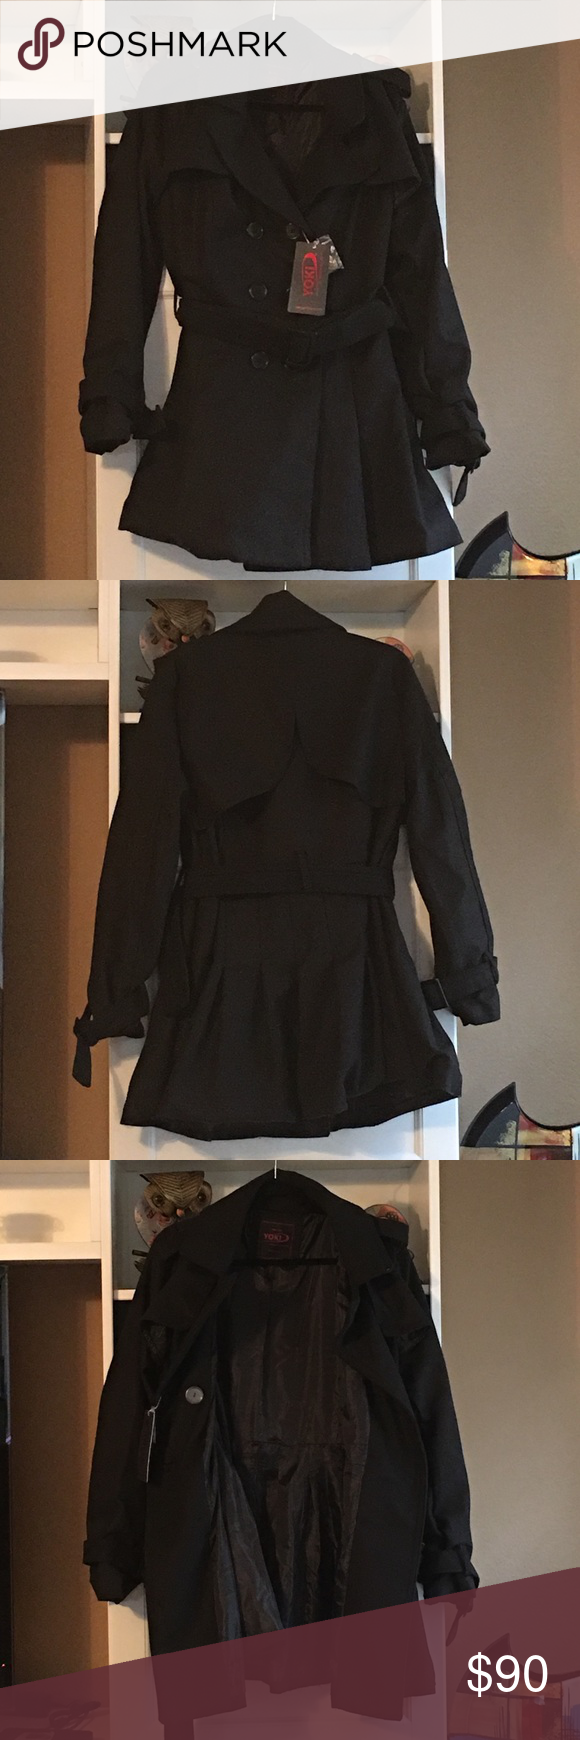 Yoki Outerwear Collection Coat 1 Extra Large Fits More Like An Extra Large 100 Polyester Dryclean Only Very Warm An Fashion Clothes Design Fashion Design [ 1740 x 580 Pixel ]